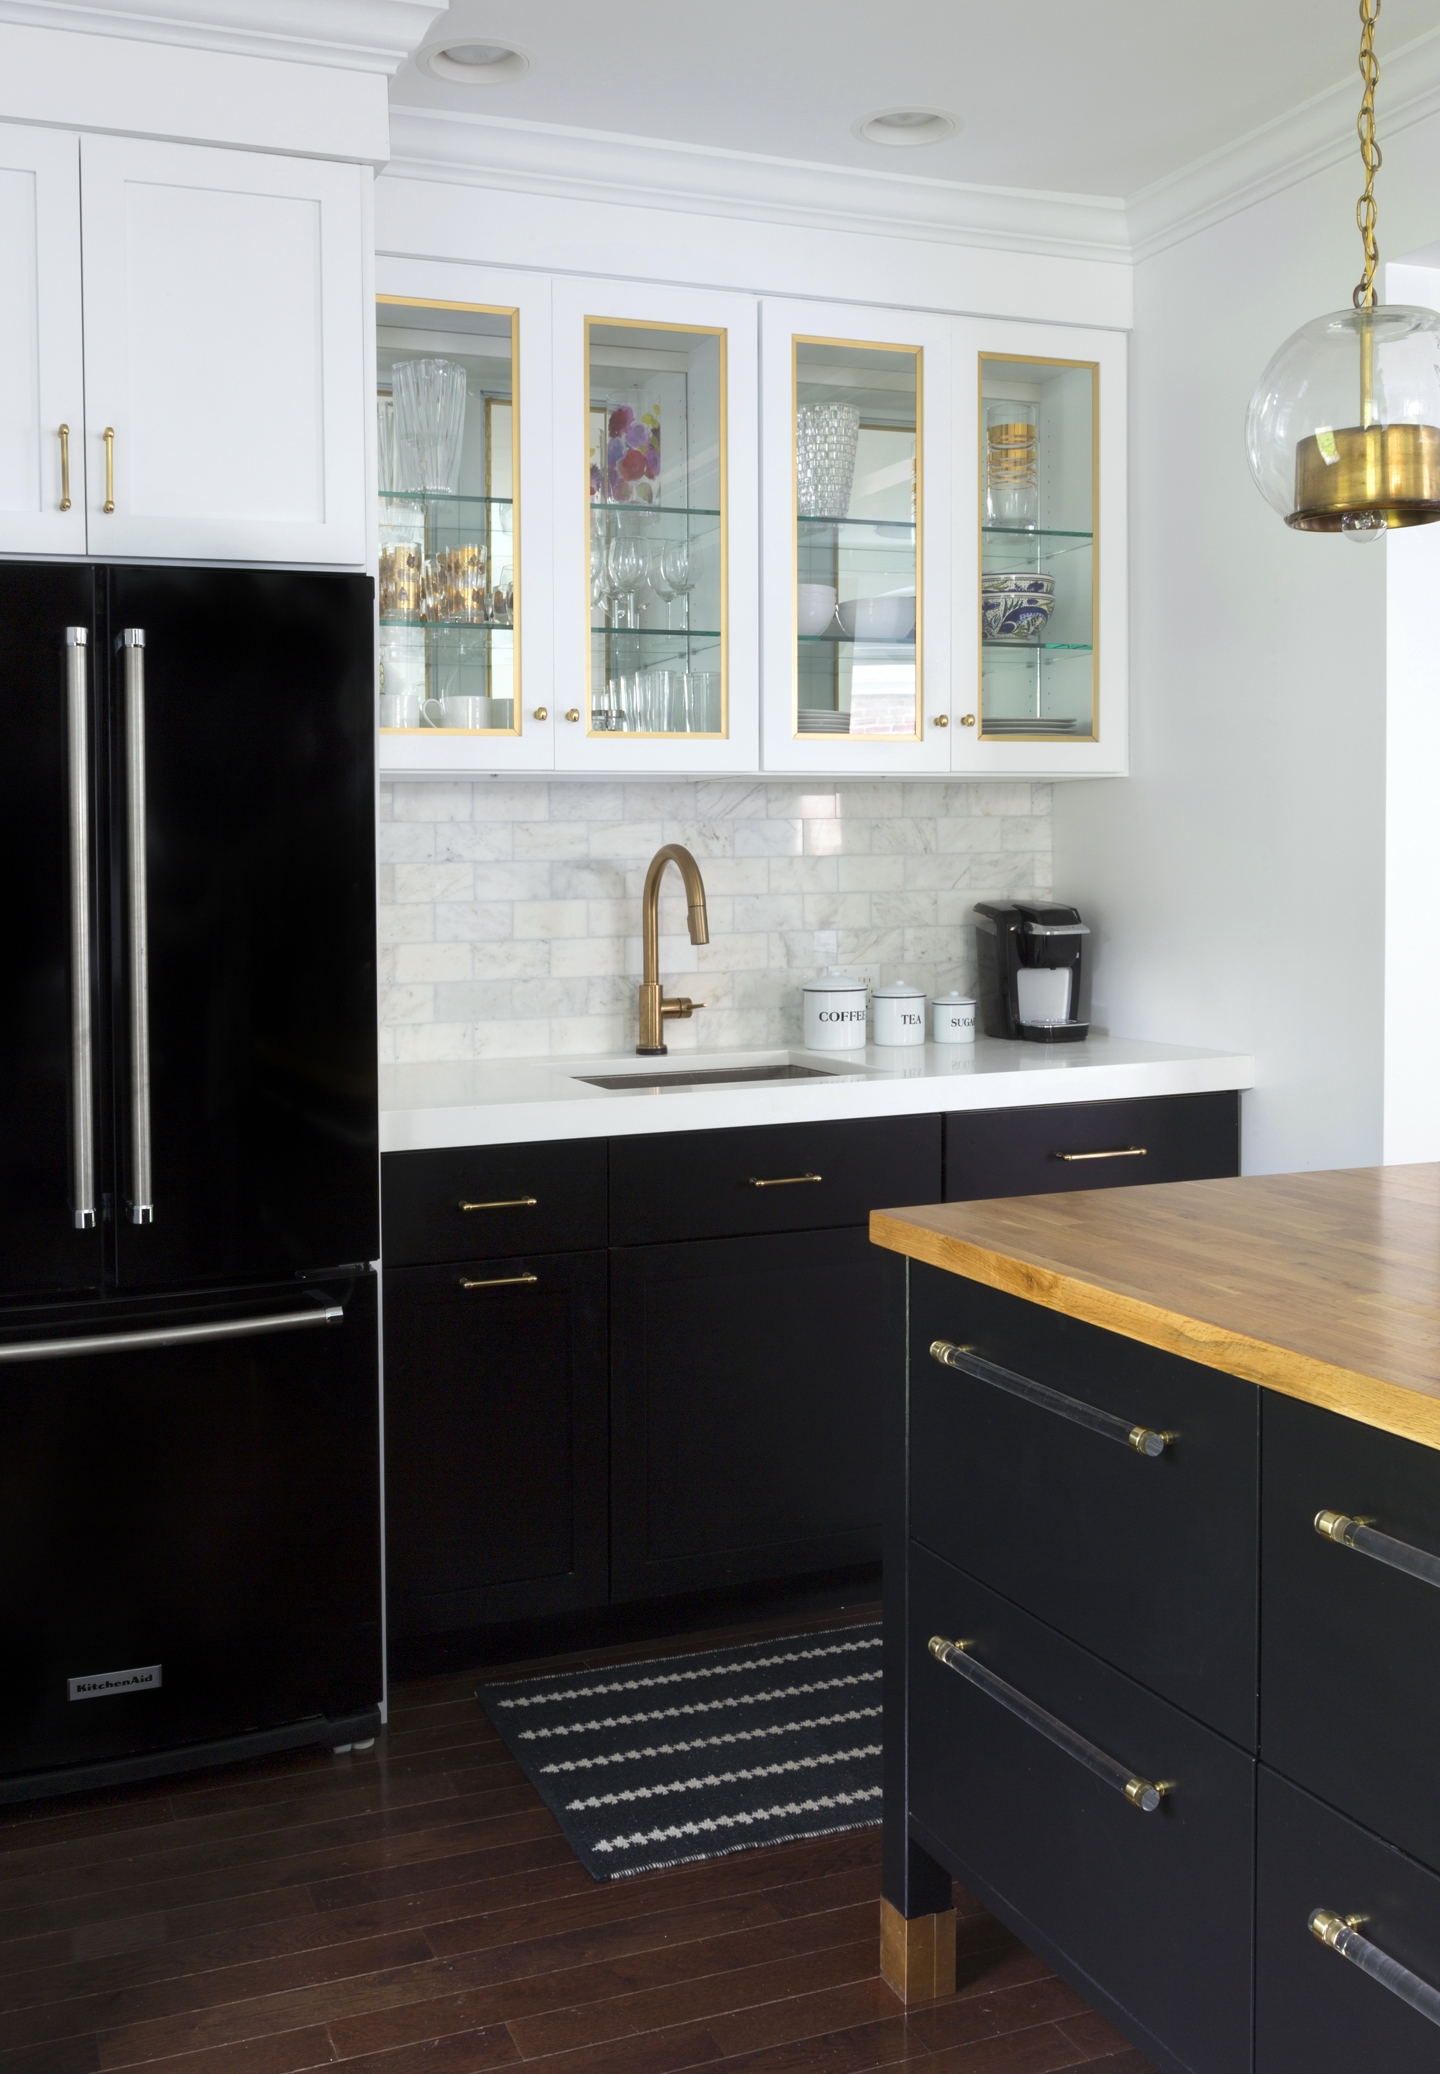 Permalink to Black Kitchen Cabinets Gold Hardware